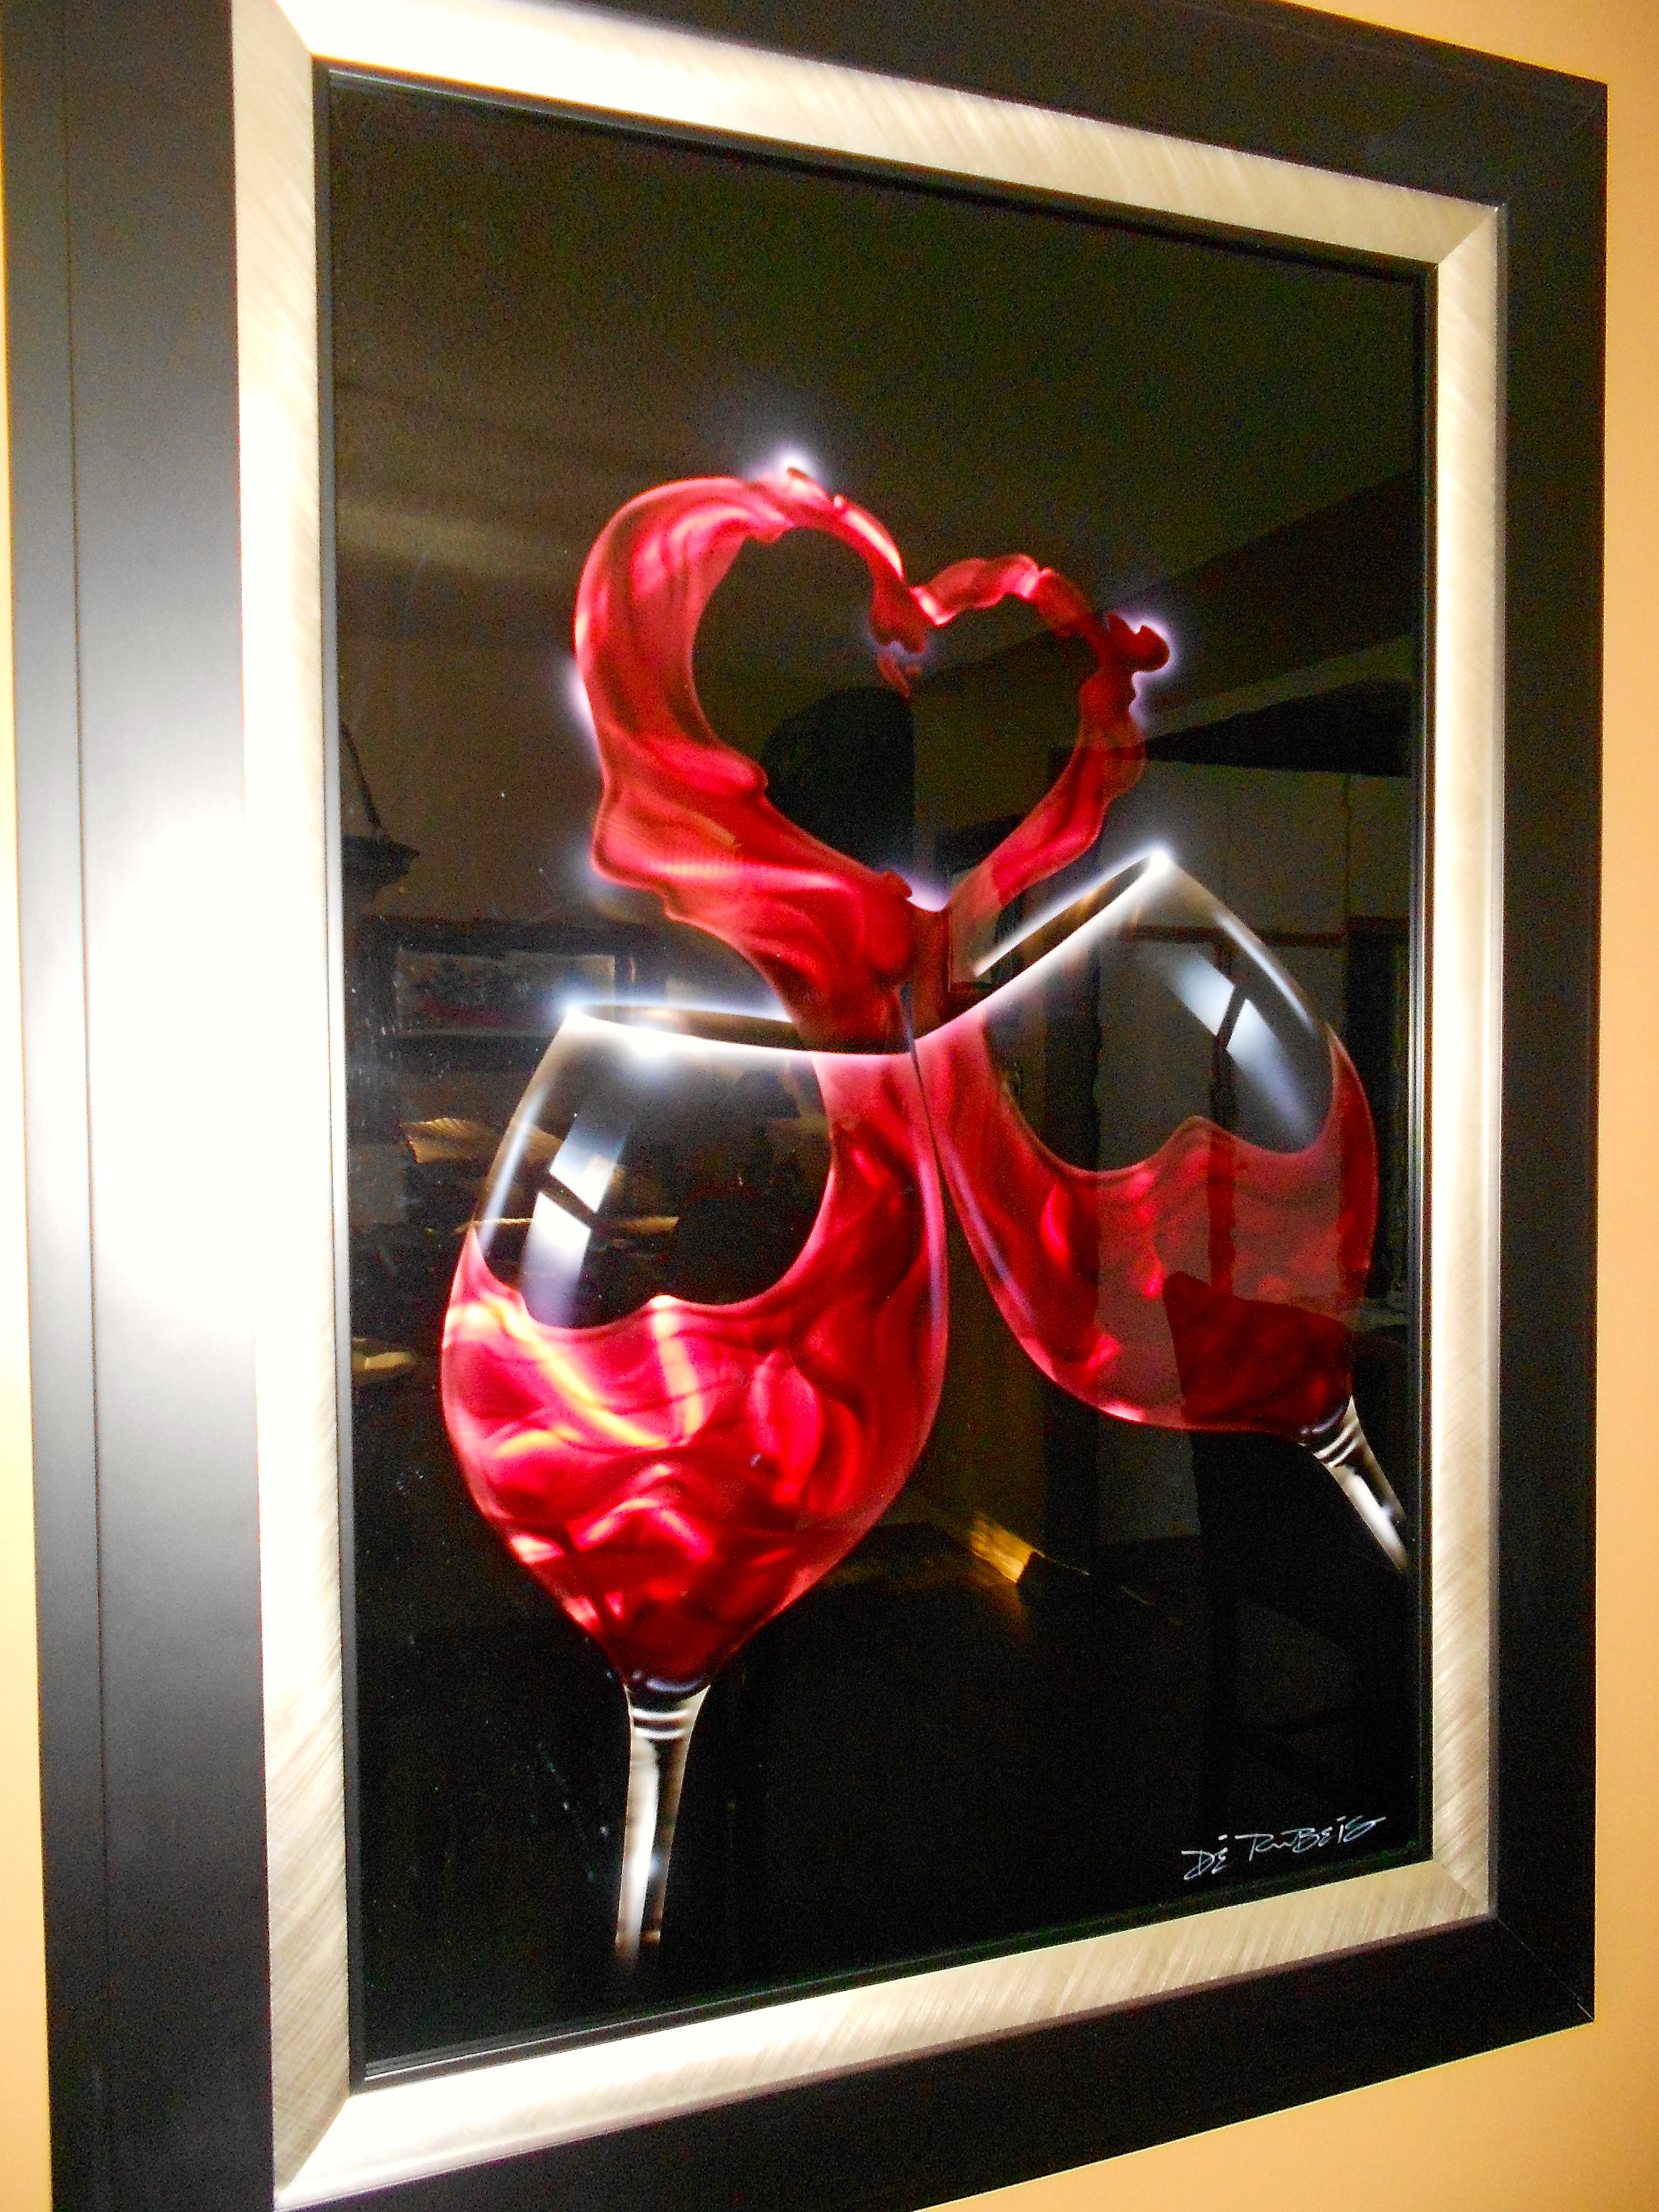 Its Called I Love Wine Appropriate For Me Lol By Chris De Rubeis Art Valentines My Love